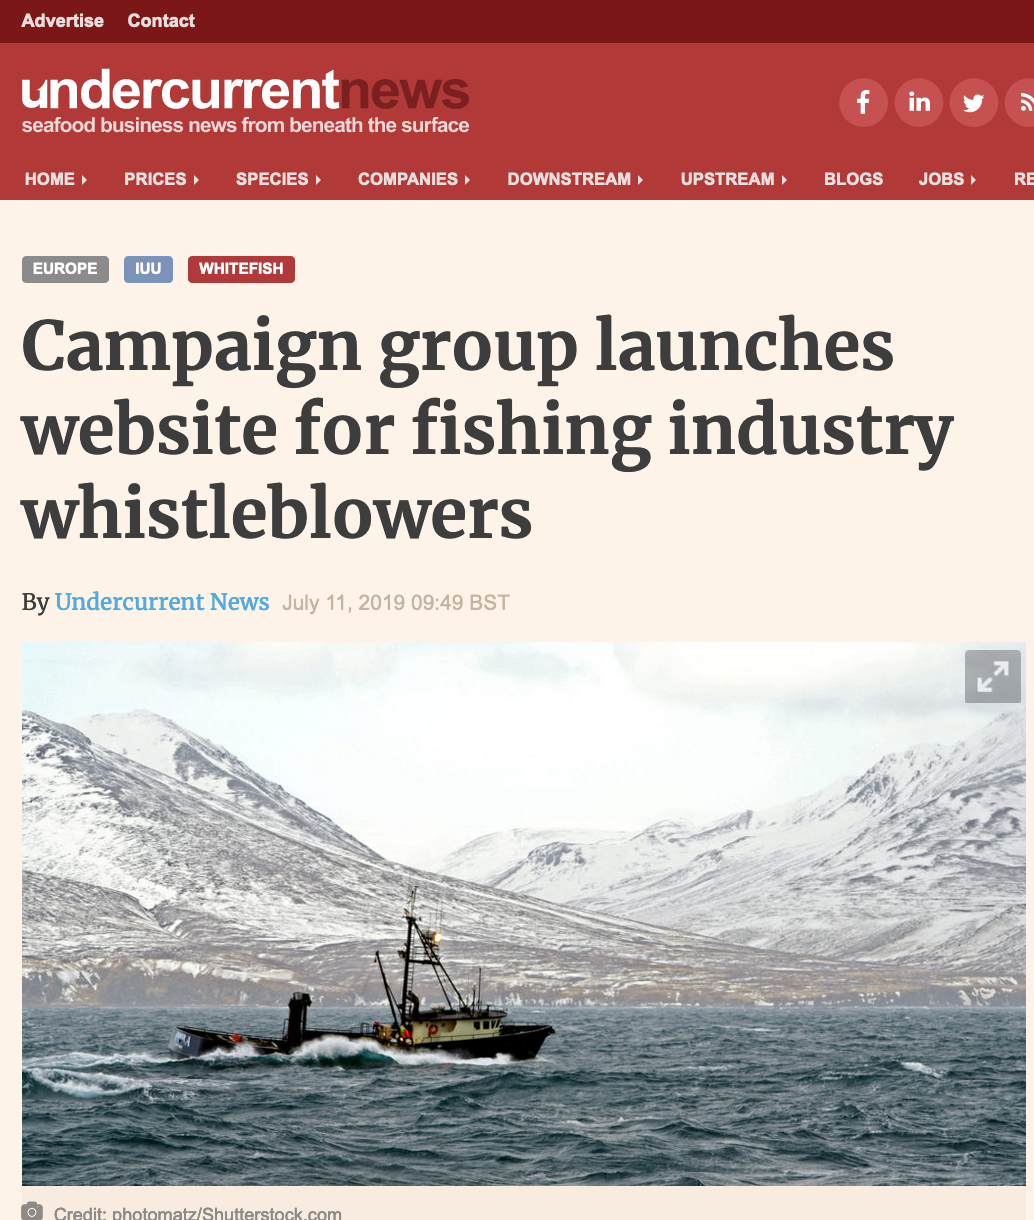 Campaign group launches website for fishing industry whistleblowers